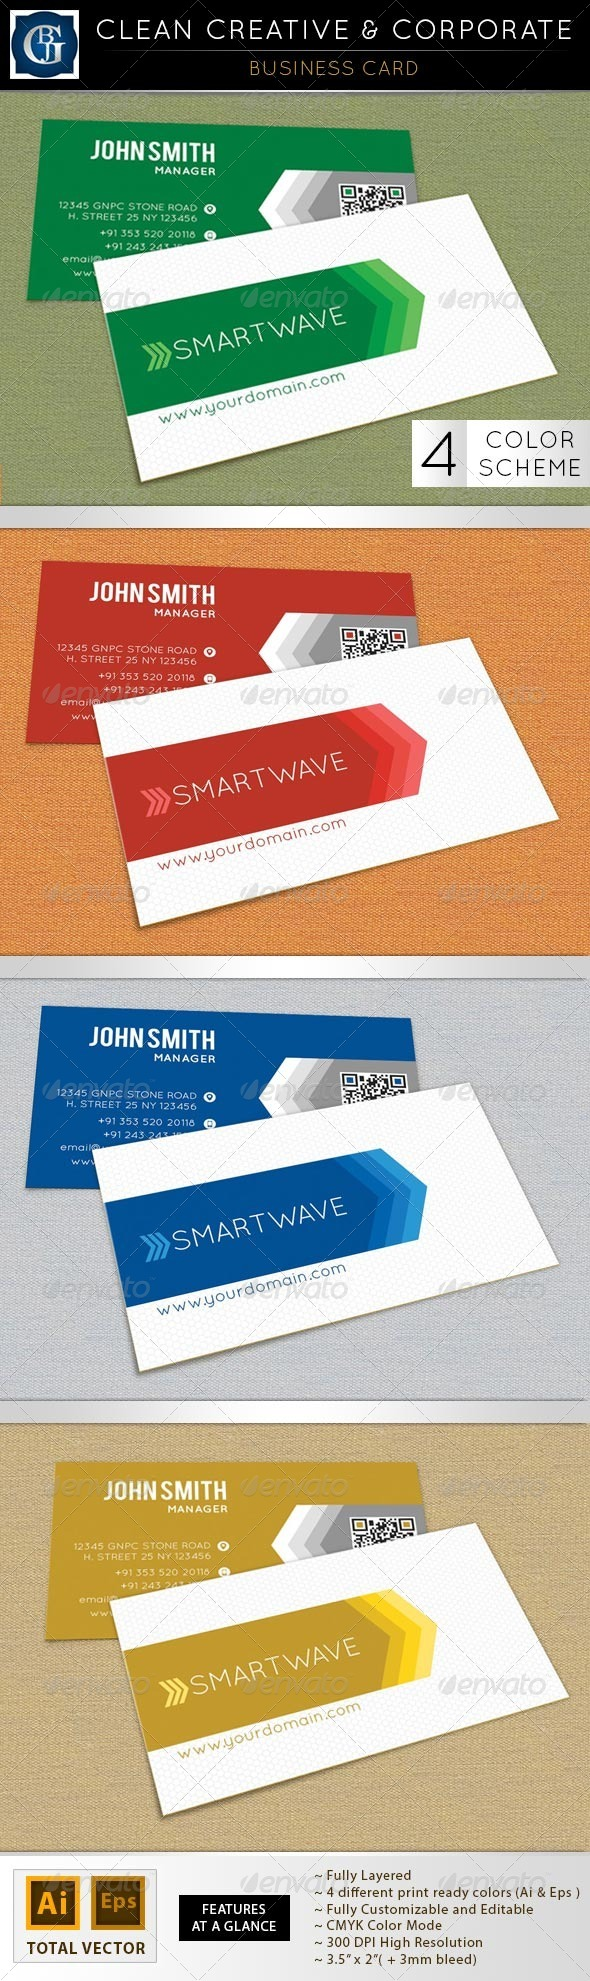 GraphicRiver Clean Creative & Corporate Business Card 5291902